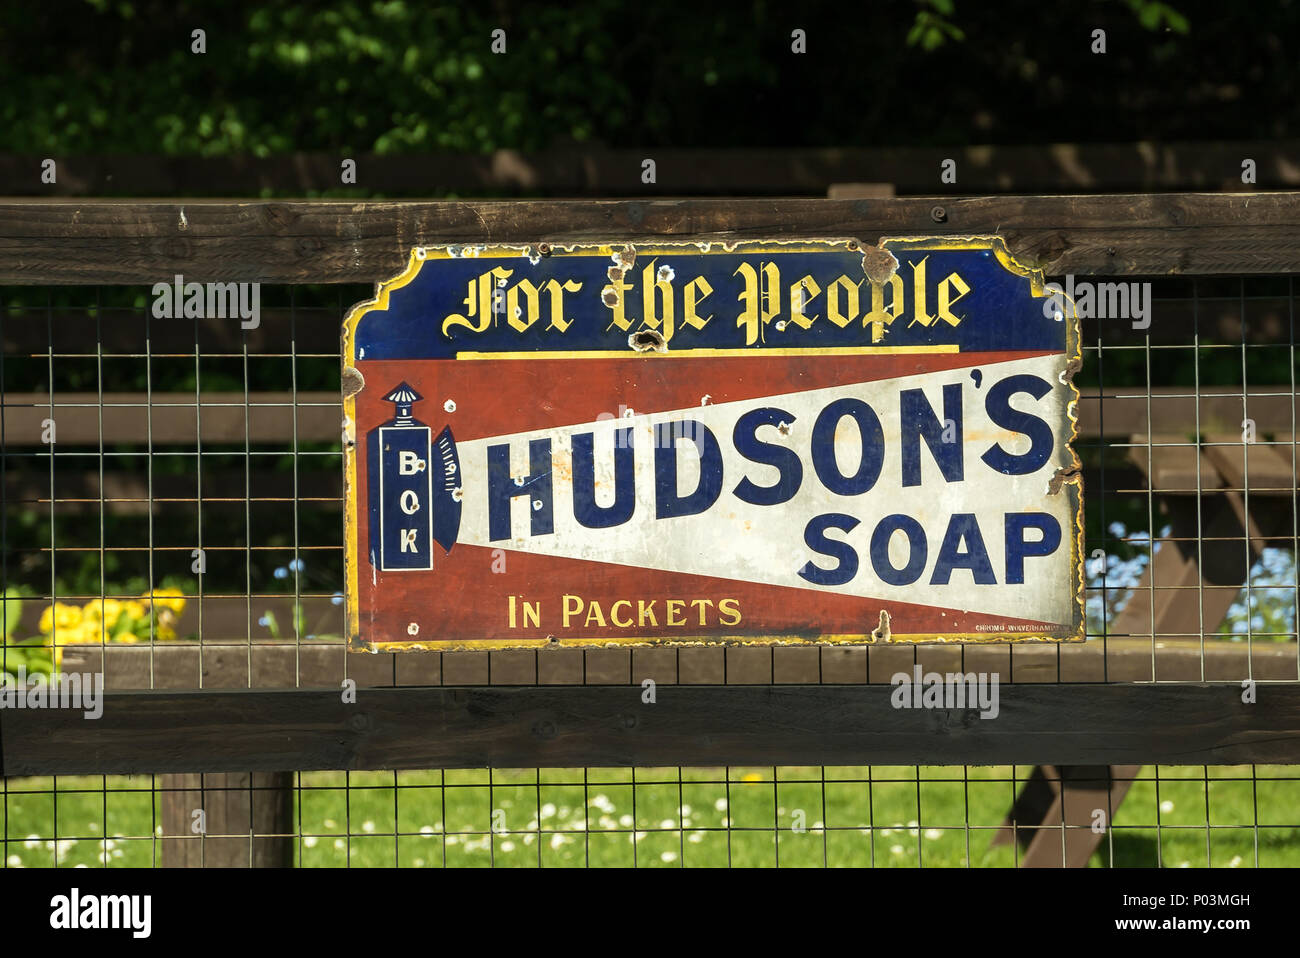 Hudson's Soap: original, outside advertising sign, now preserved, on display at a station on the Severn Valley Railway heritage line. - Stock Image